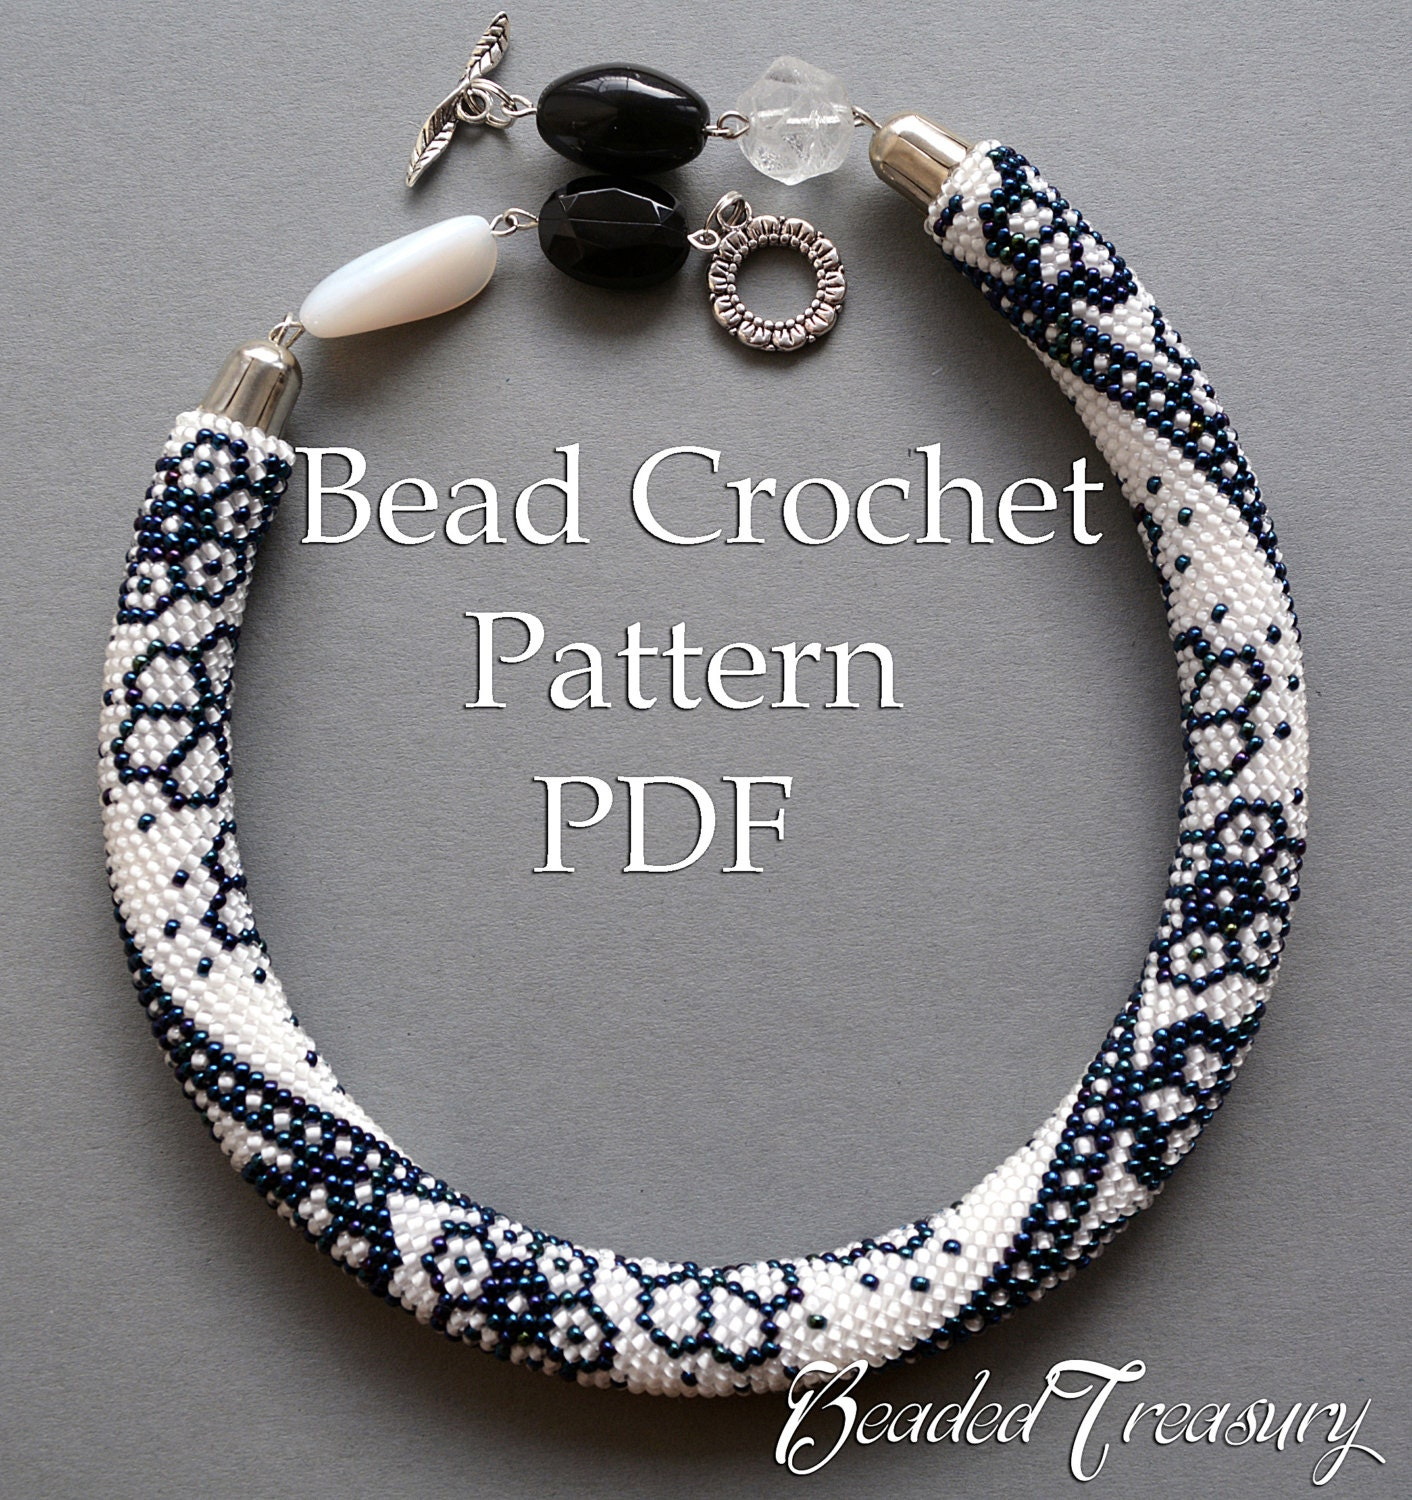 Crochet Pattern With Beads : Pattern for bead crochet necklace Winter Lace